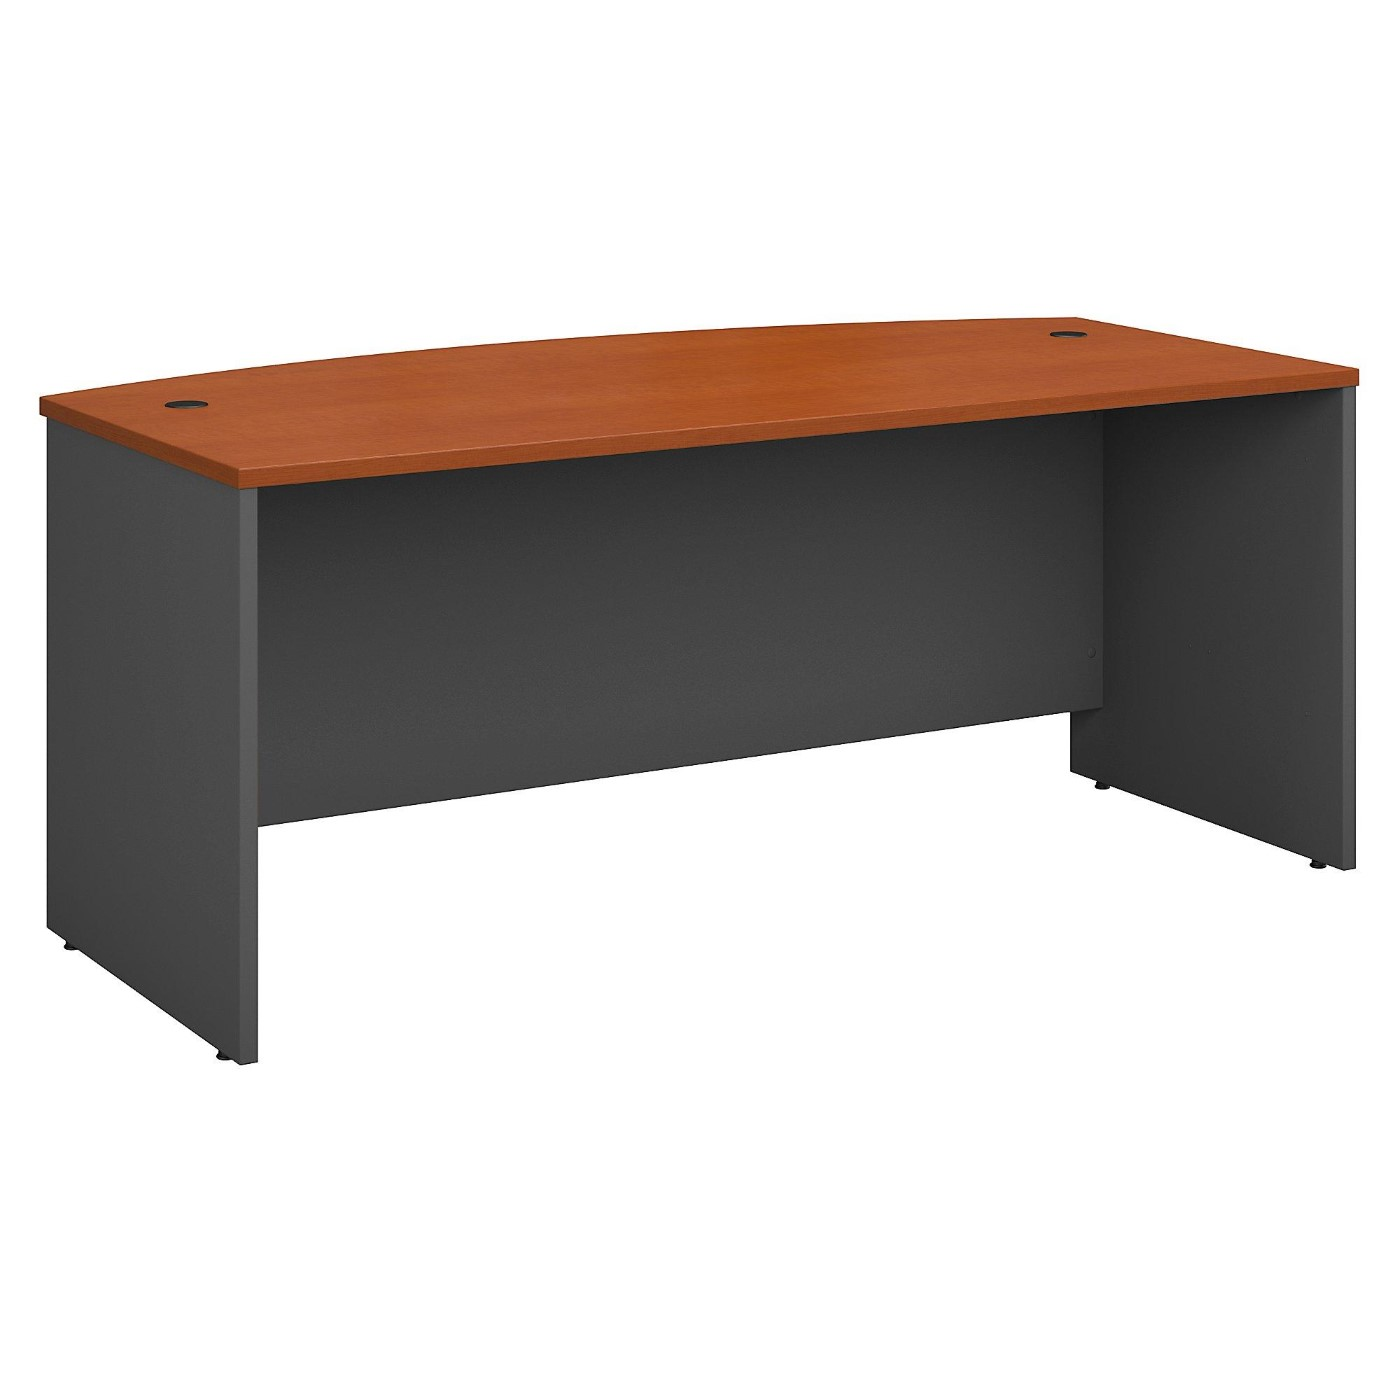 BUSH BUSINESS FURNITURE SERIES C 72W X 36D BOW FRONT DESK. FREE SHIPPING.